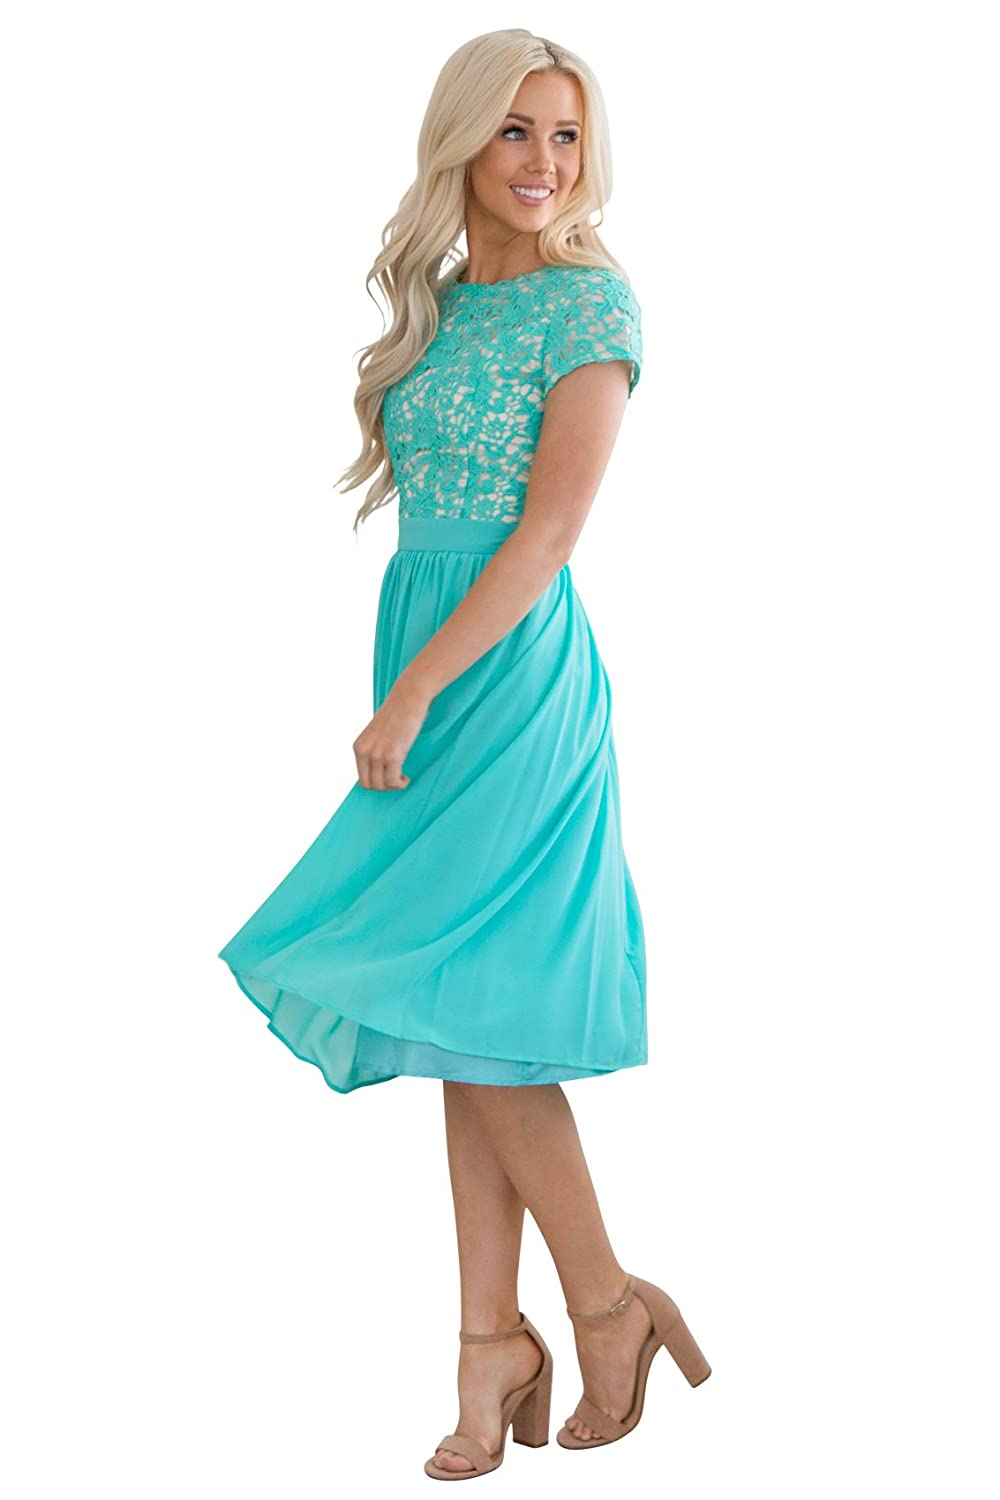 0453b4dd982c0 Modest Semi-Formal Dress - Perfect for Homecoming or Prom, Holiday Parties  or as a Modest Bridesmaid Dress! Beautiful lace bodice with flowing chiffon  skirt ...